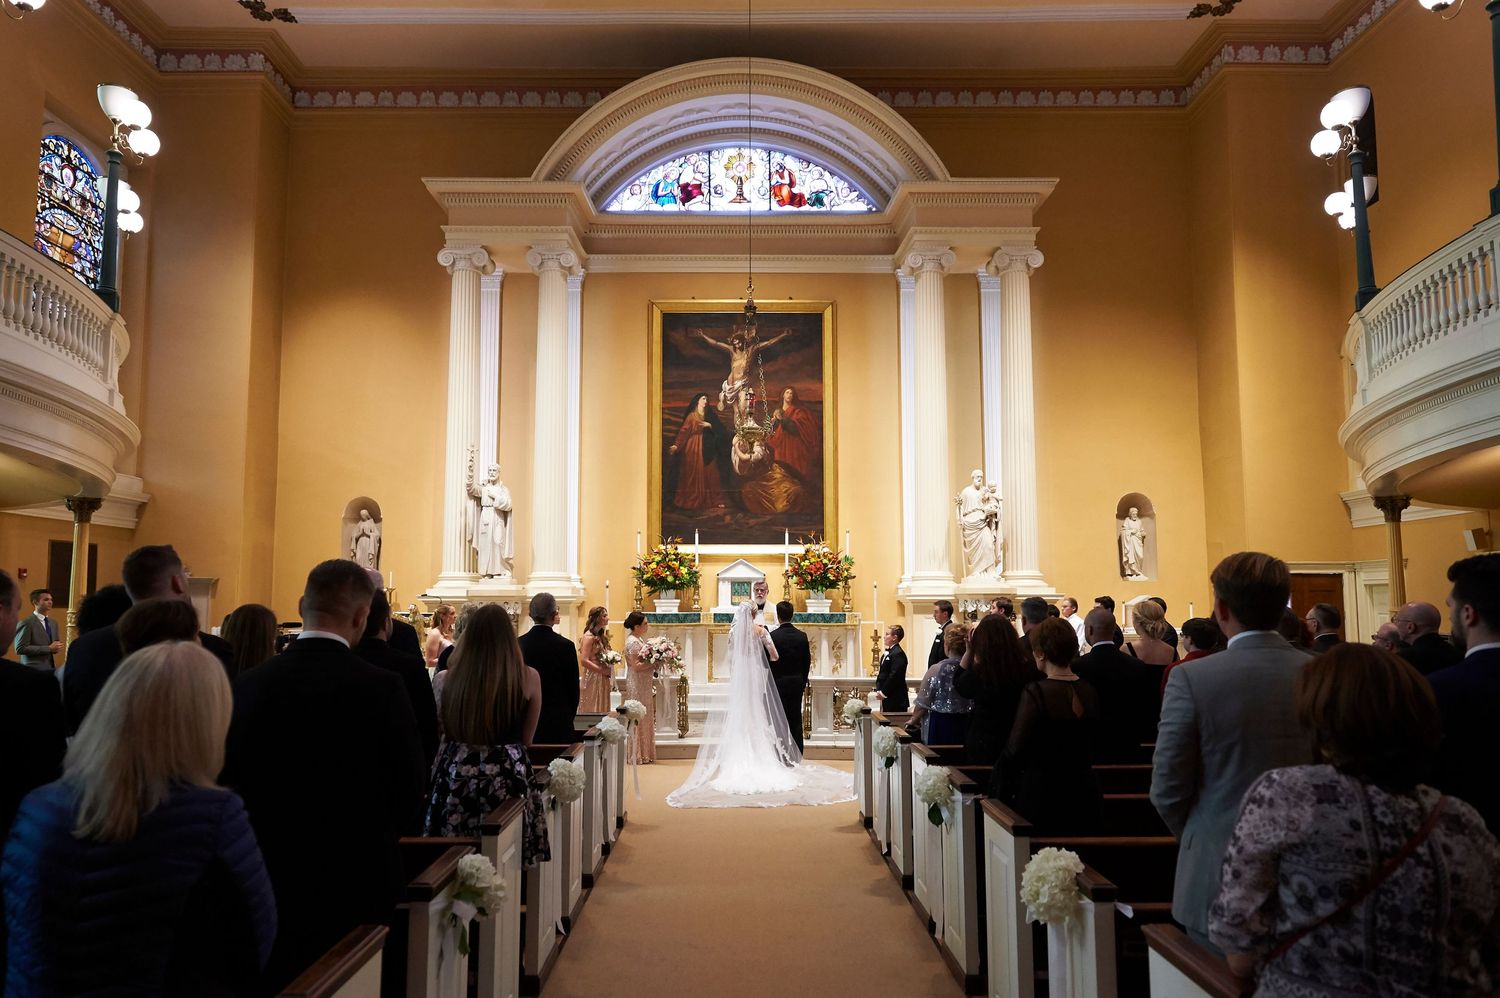 bride and groom at alter in Old St. Joseph's church in Philadelphia wedding photo